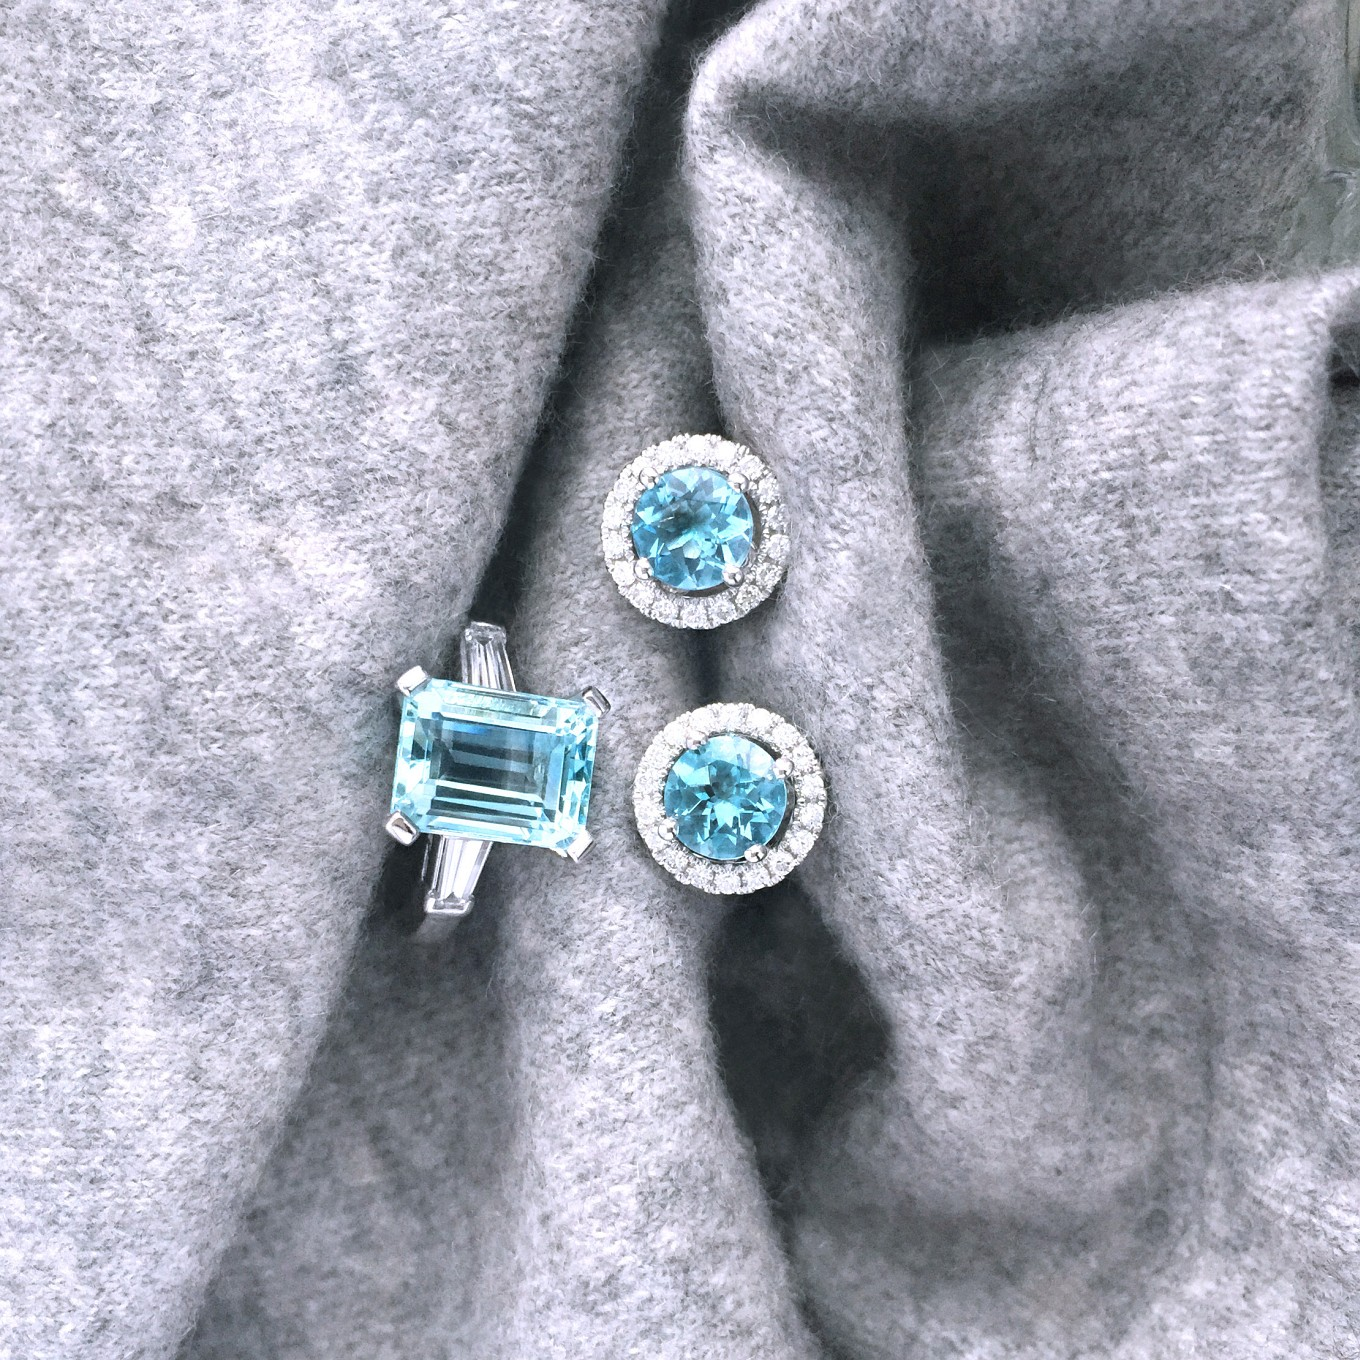 EMERALD CUT AQUAMARINE & DIAMOND RING IN PLATINUM BRILLIANTBRILLIANT CUT AQUAMARINE  & DIAMOND STUDS